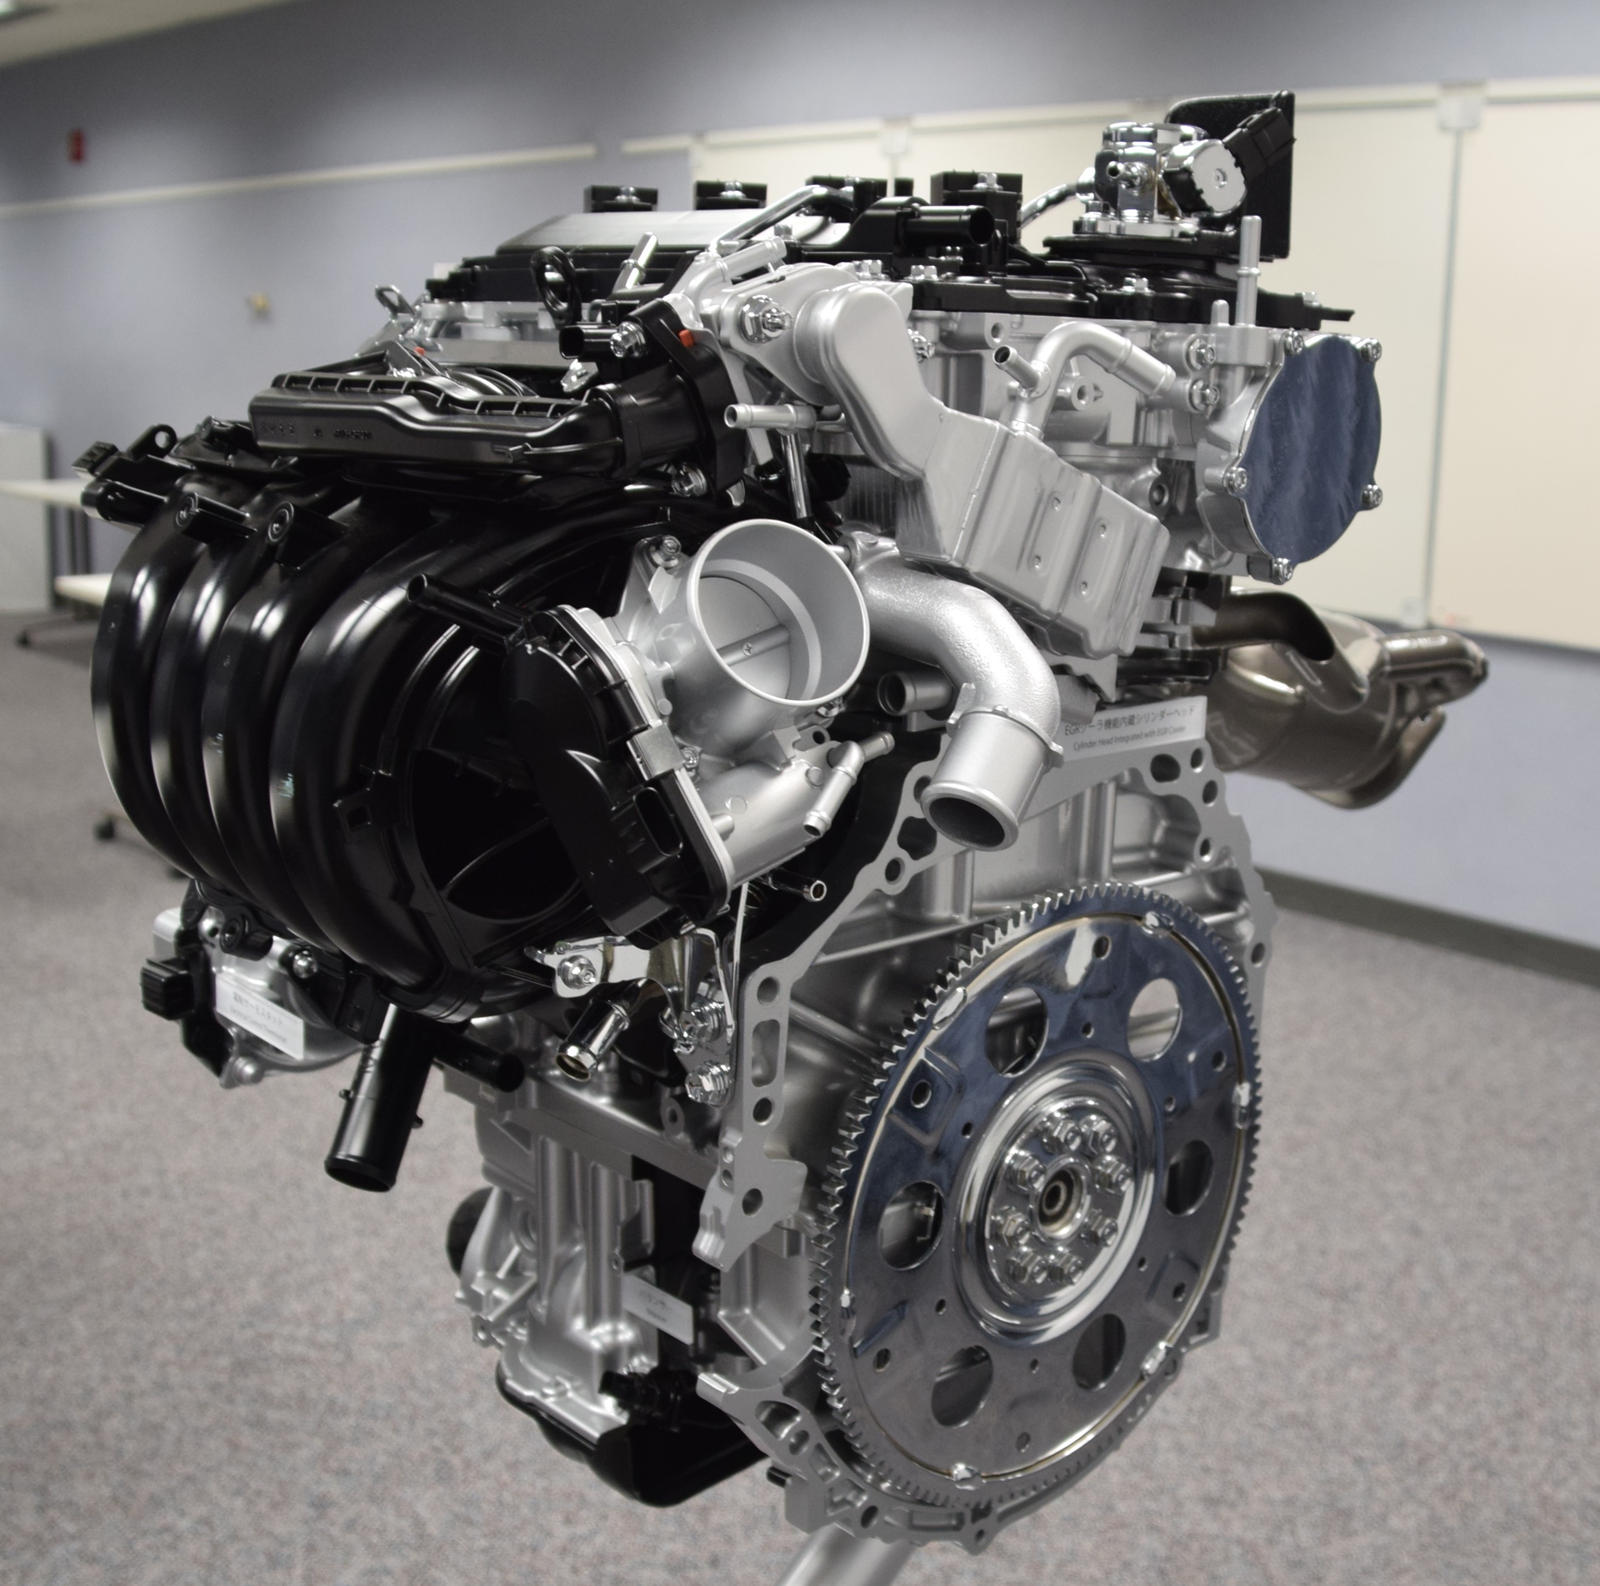 10 Best Engines For 2019 | CarBuzz